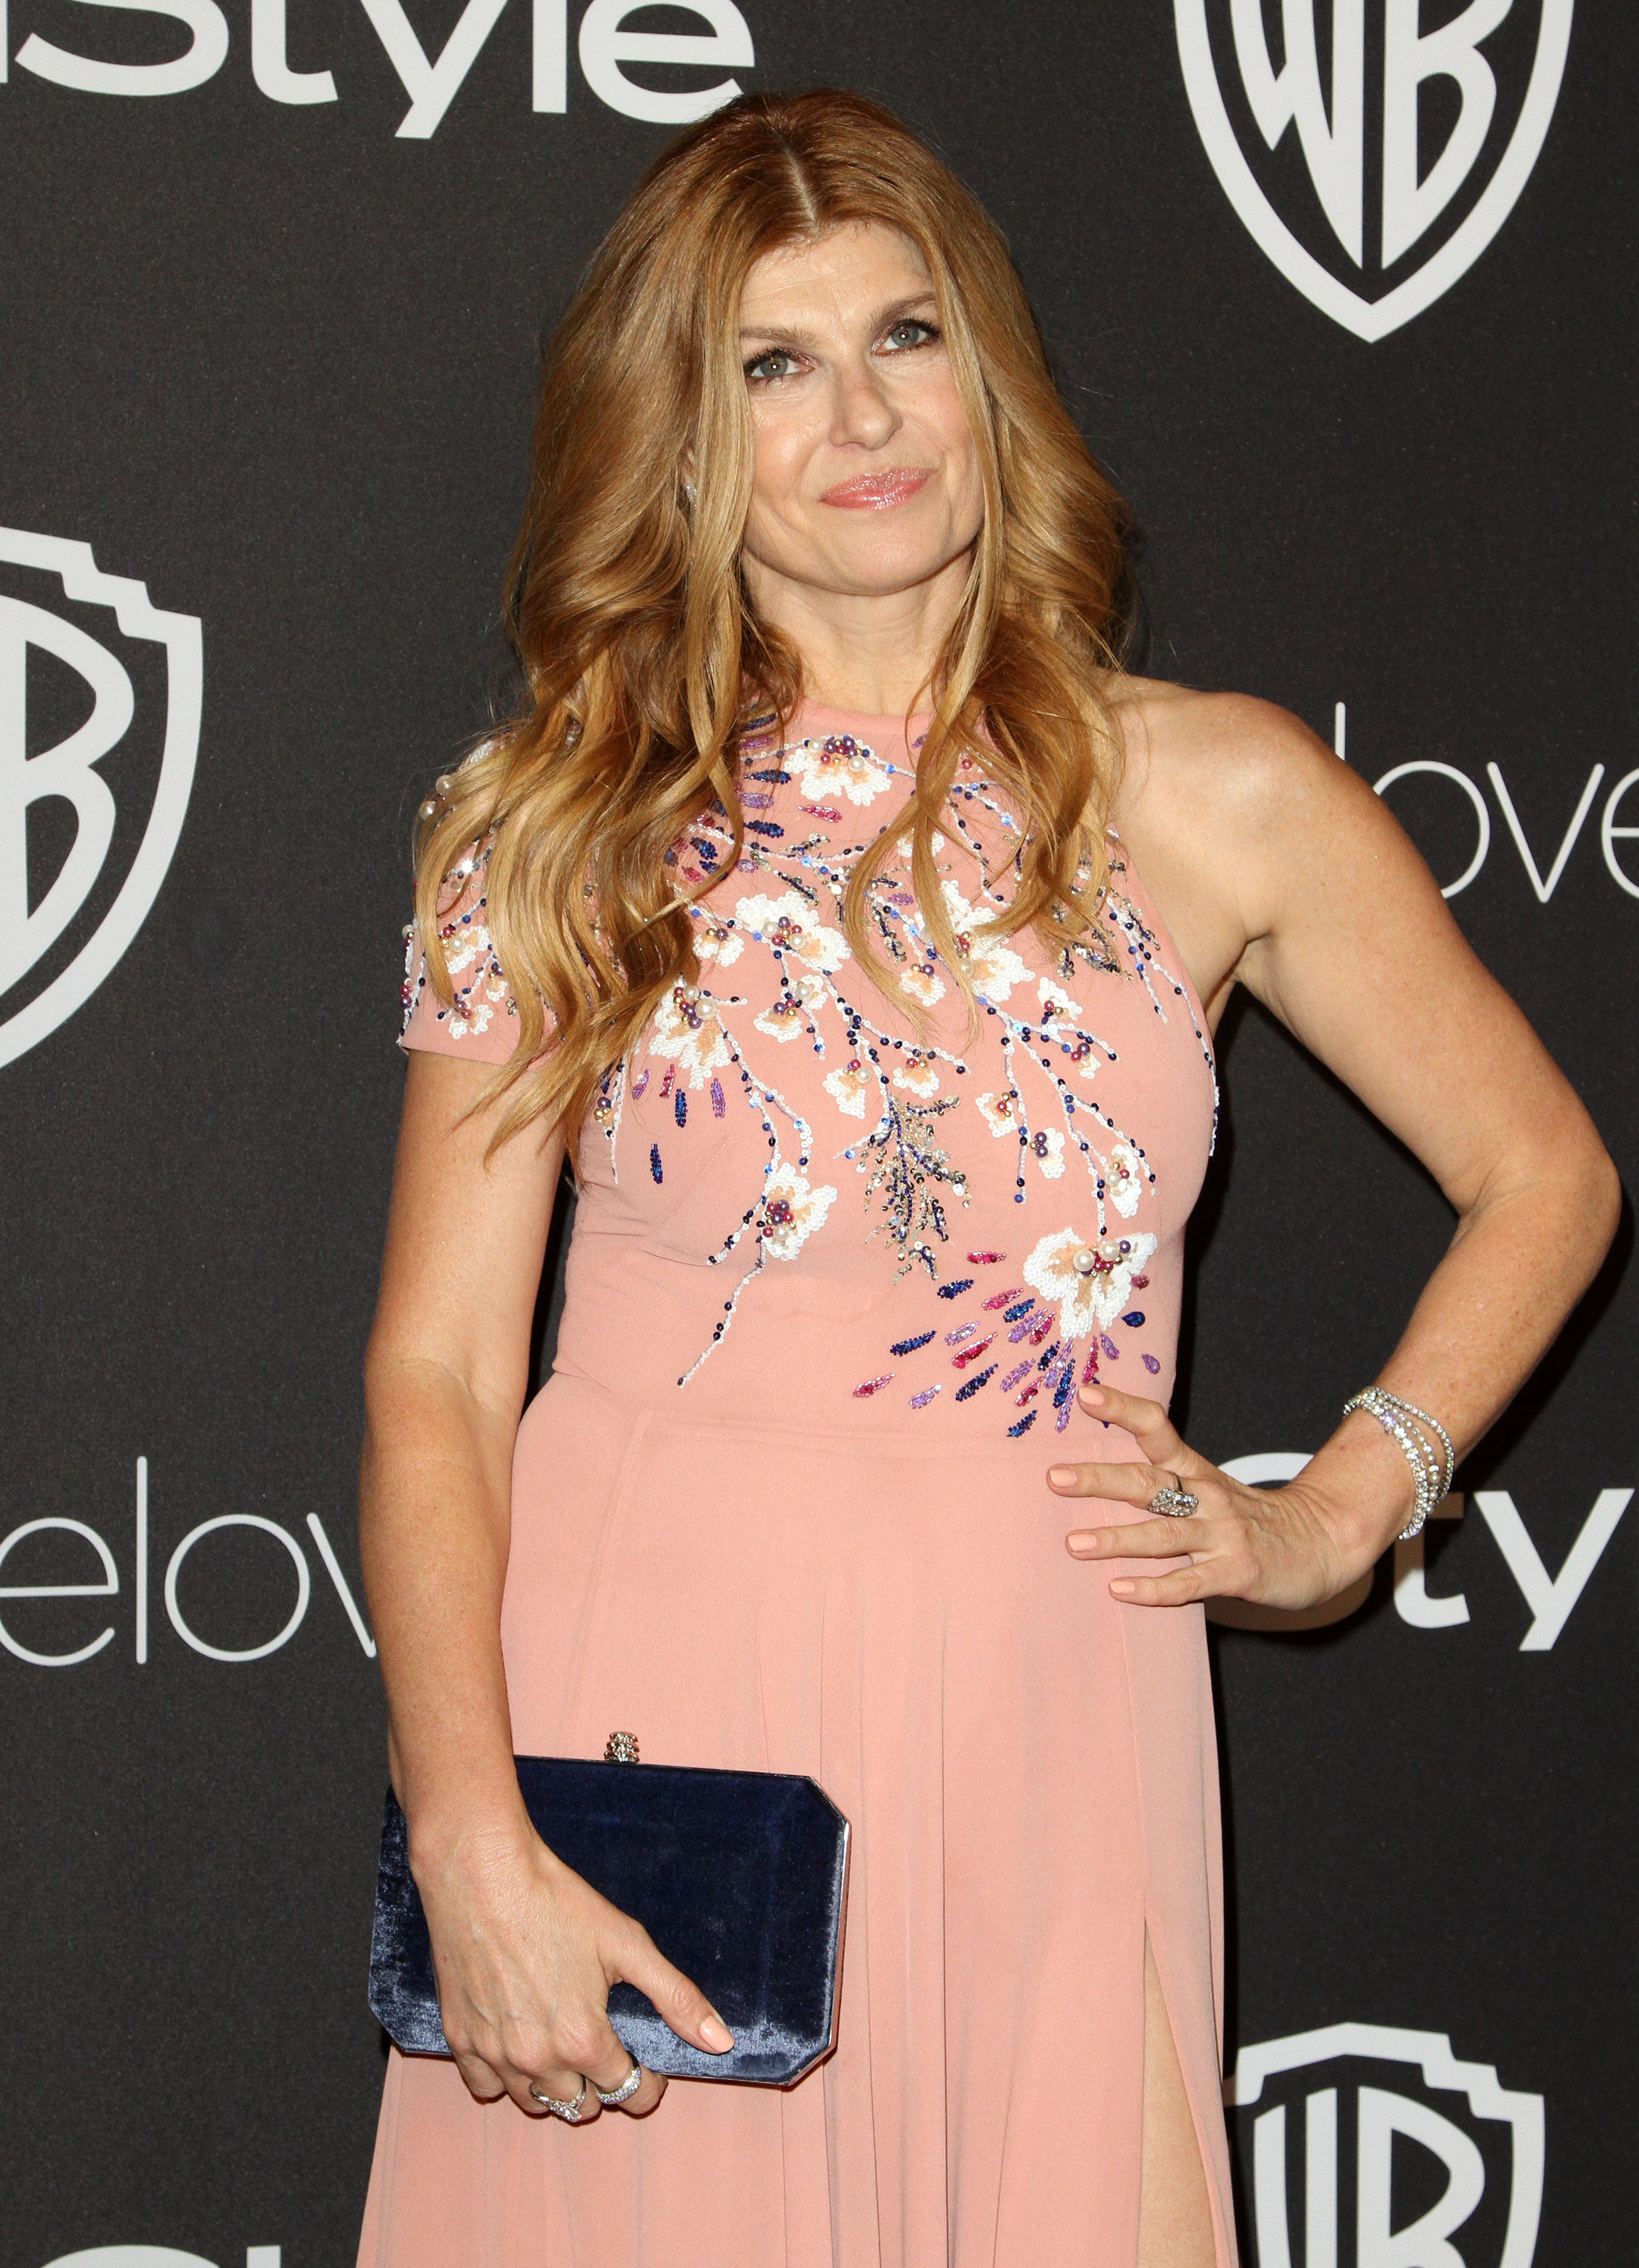 InStyle & Warner Bros. Pictures Golden Globe After Party 2017 held at the Beverly Hilton Hotel - Arrivals  Featuring: Connie Britton Where: Los Angeles, California, United States When: 09 Jan 2017 Credit: Adriana M. Barraza/WENN.com